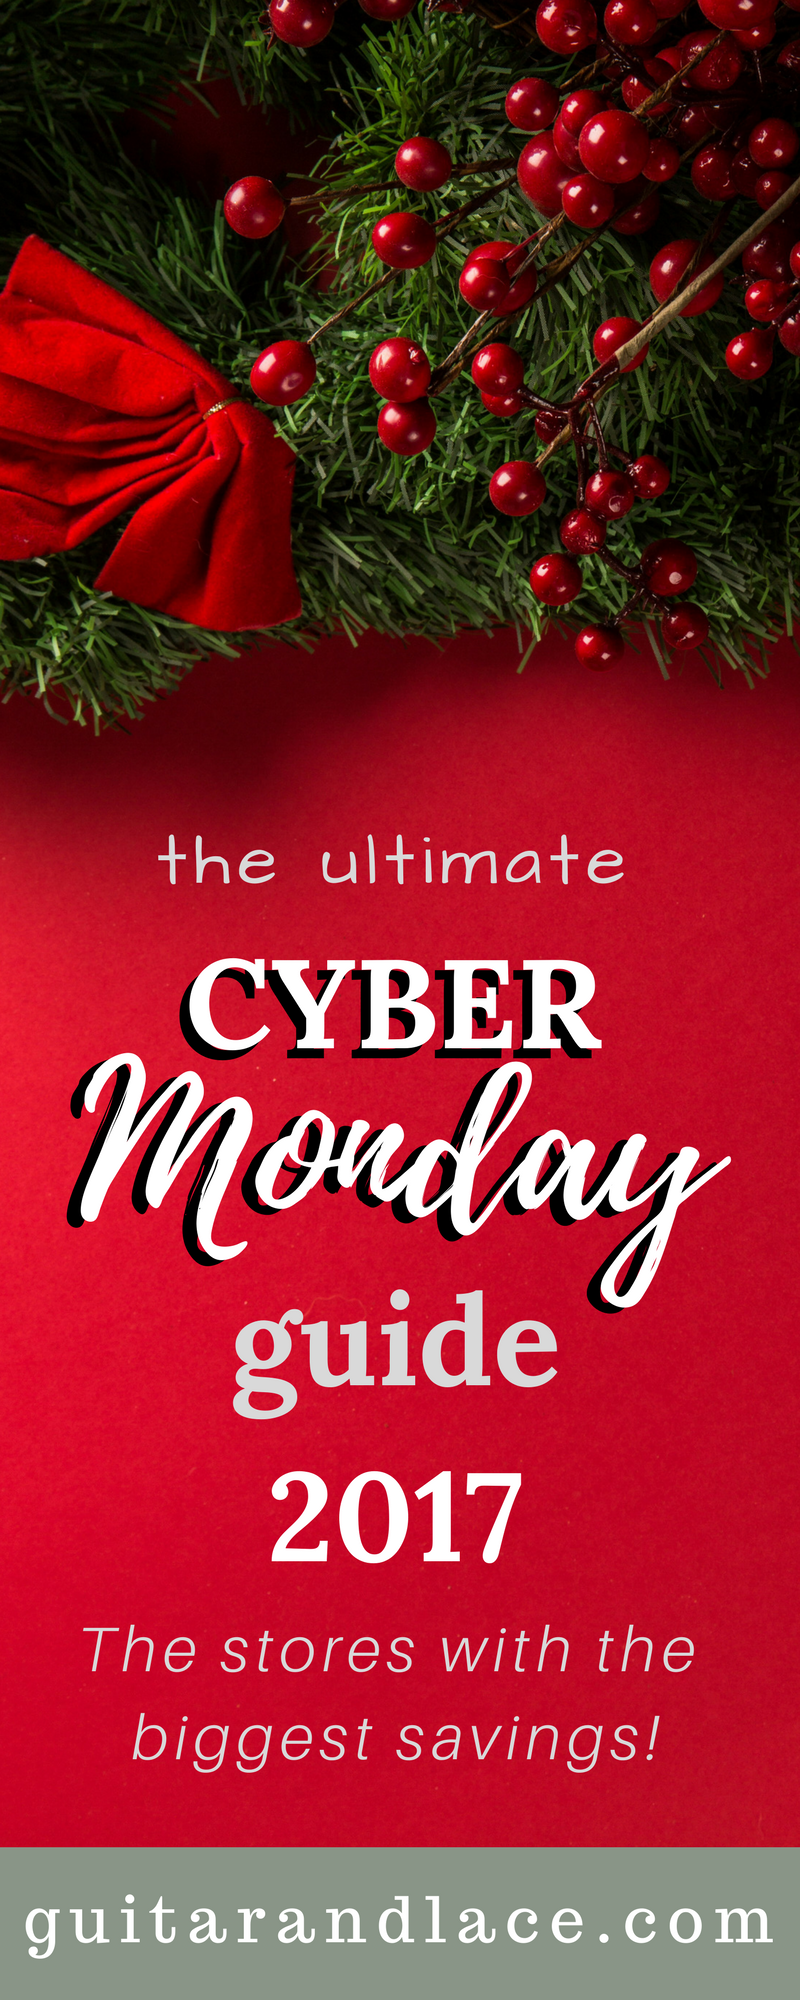 christmas decor - Cyber Monday Christmas Decorations